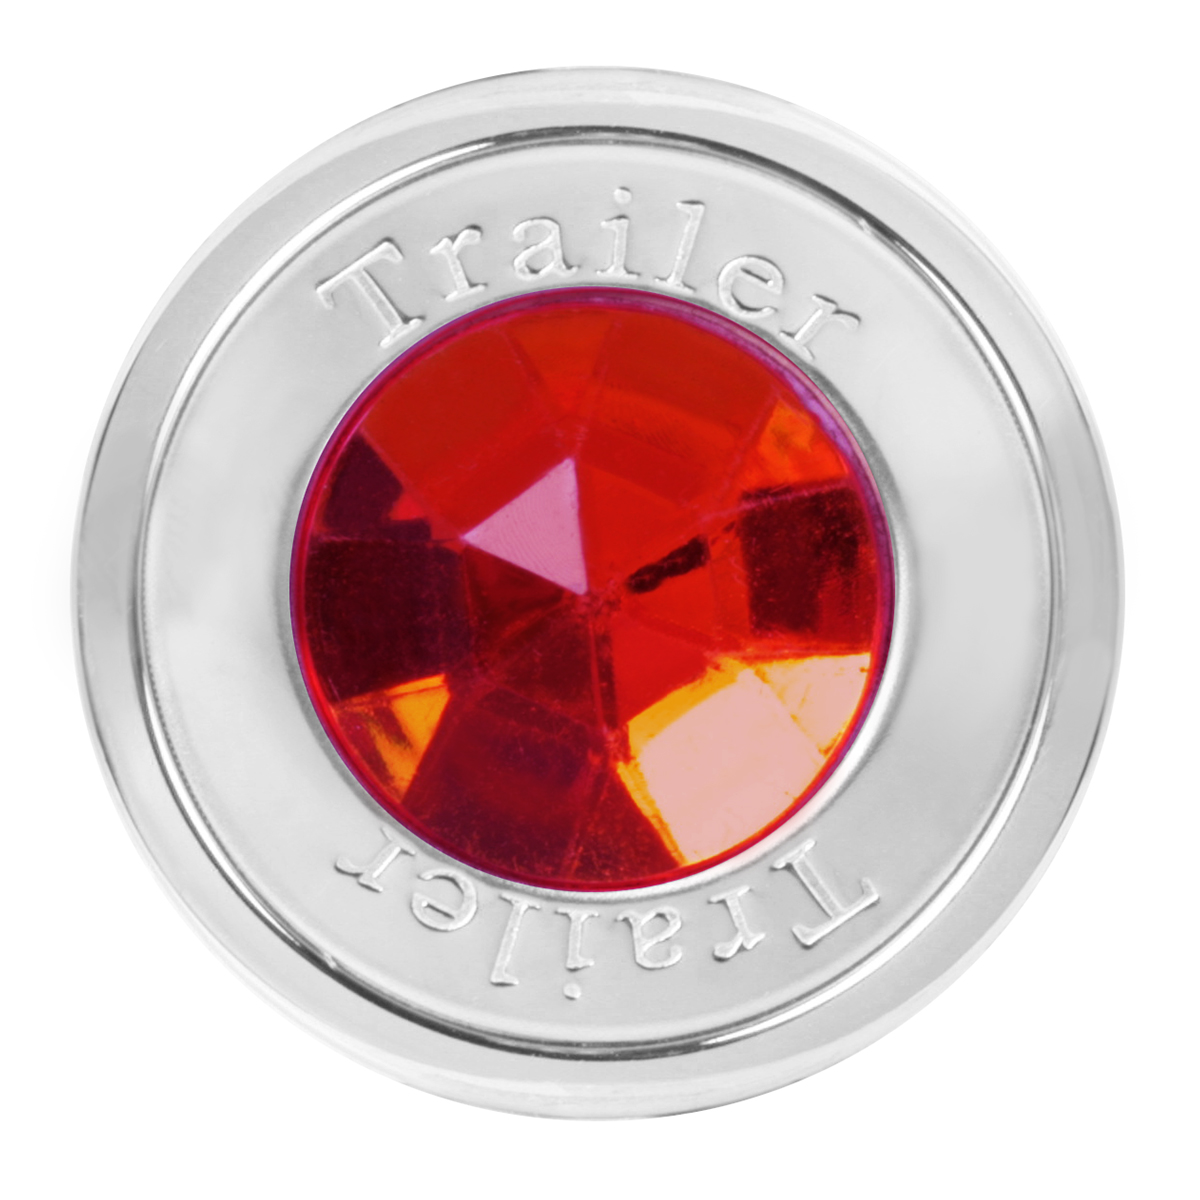 95825 Trailer Air Control Knob w/ Red Crystal